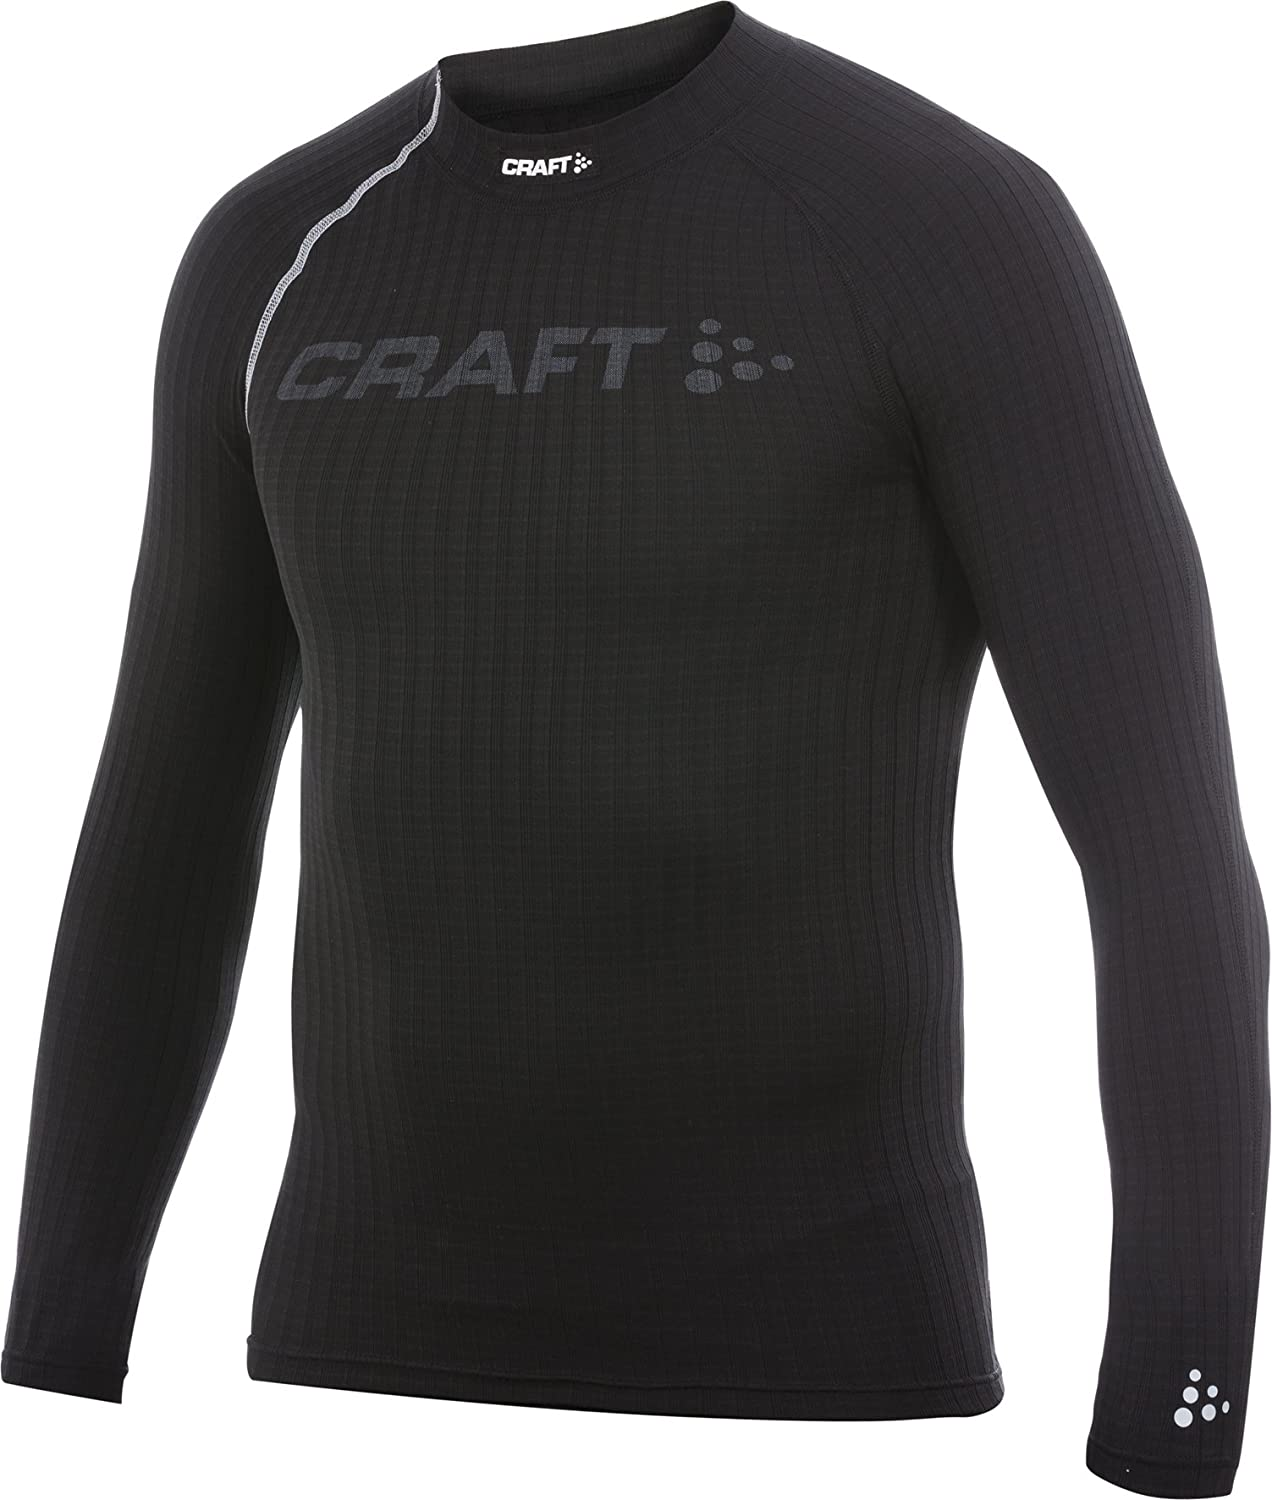 Craft Active Extreme Mens Functional Undershirt with Crew Neck